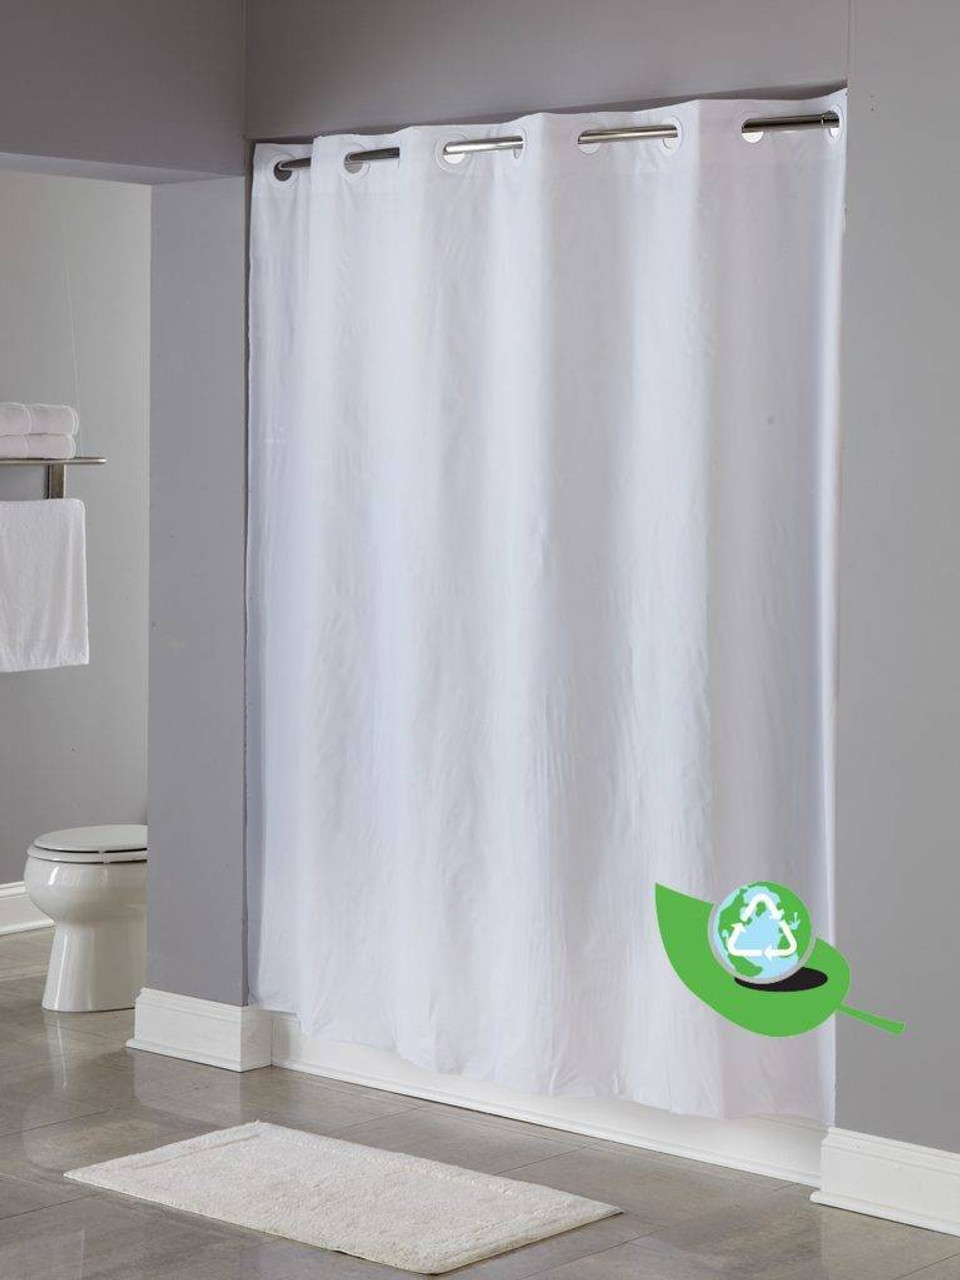 Focus Product Group Peva Hookless Shower Curtain or Pack of 12